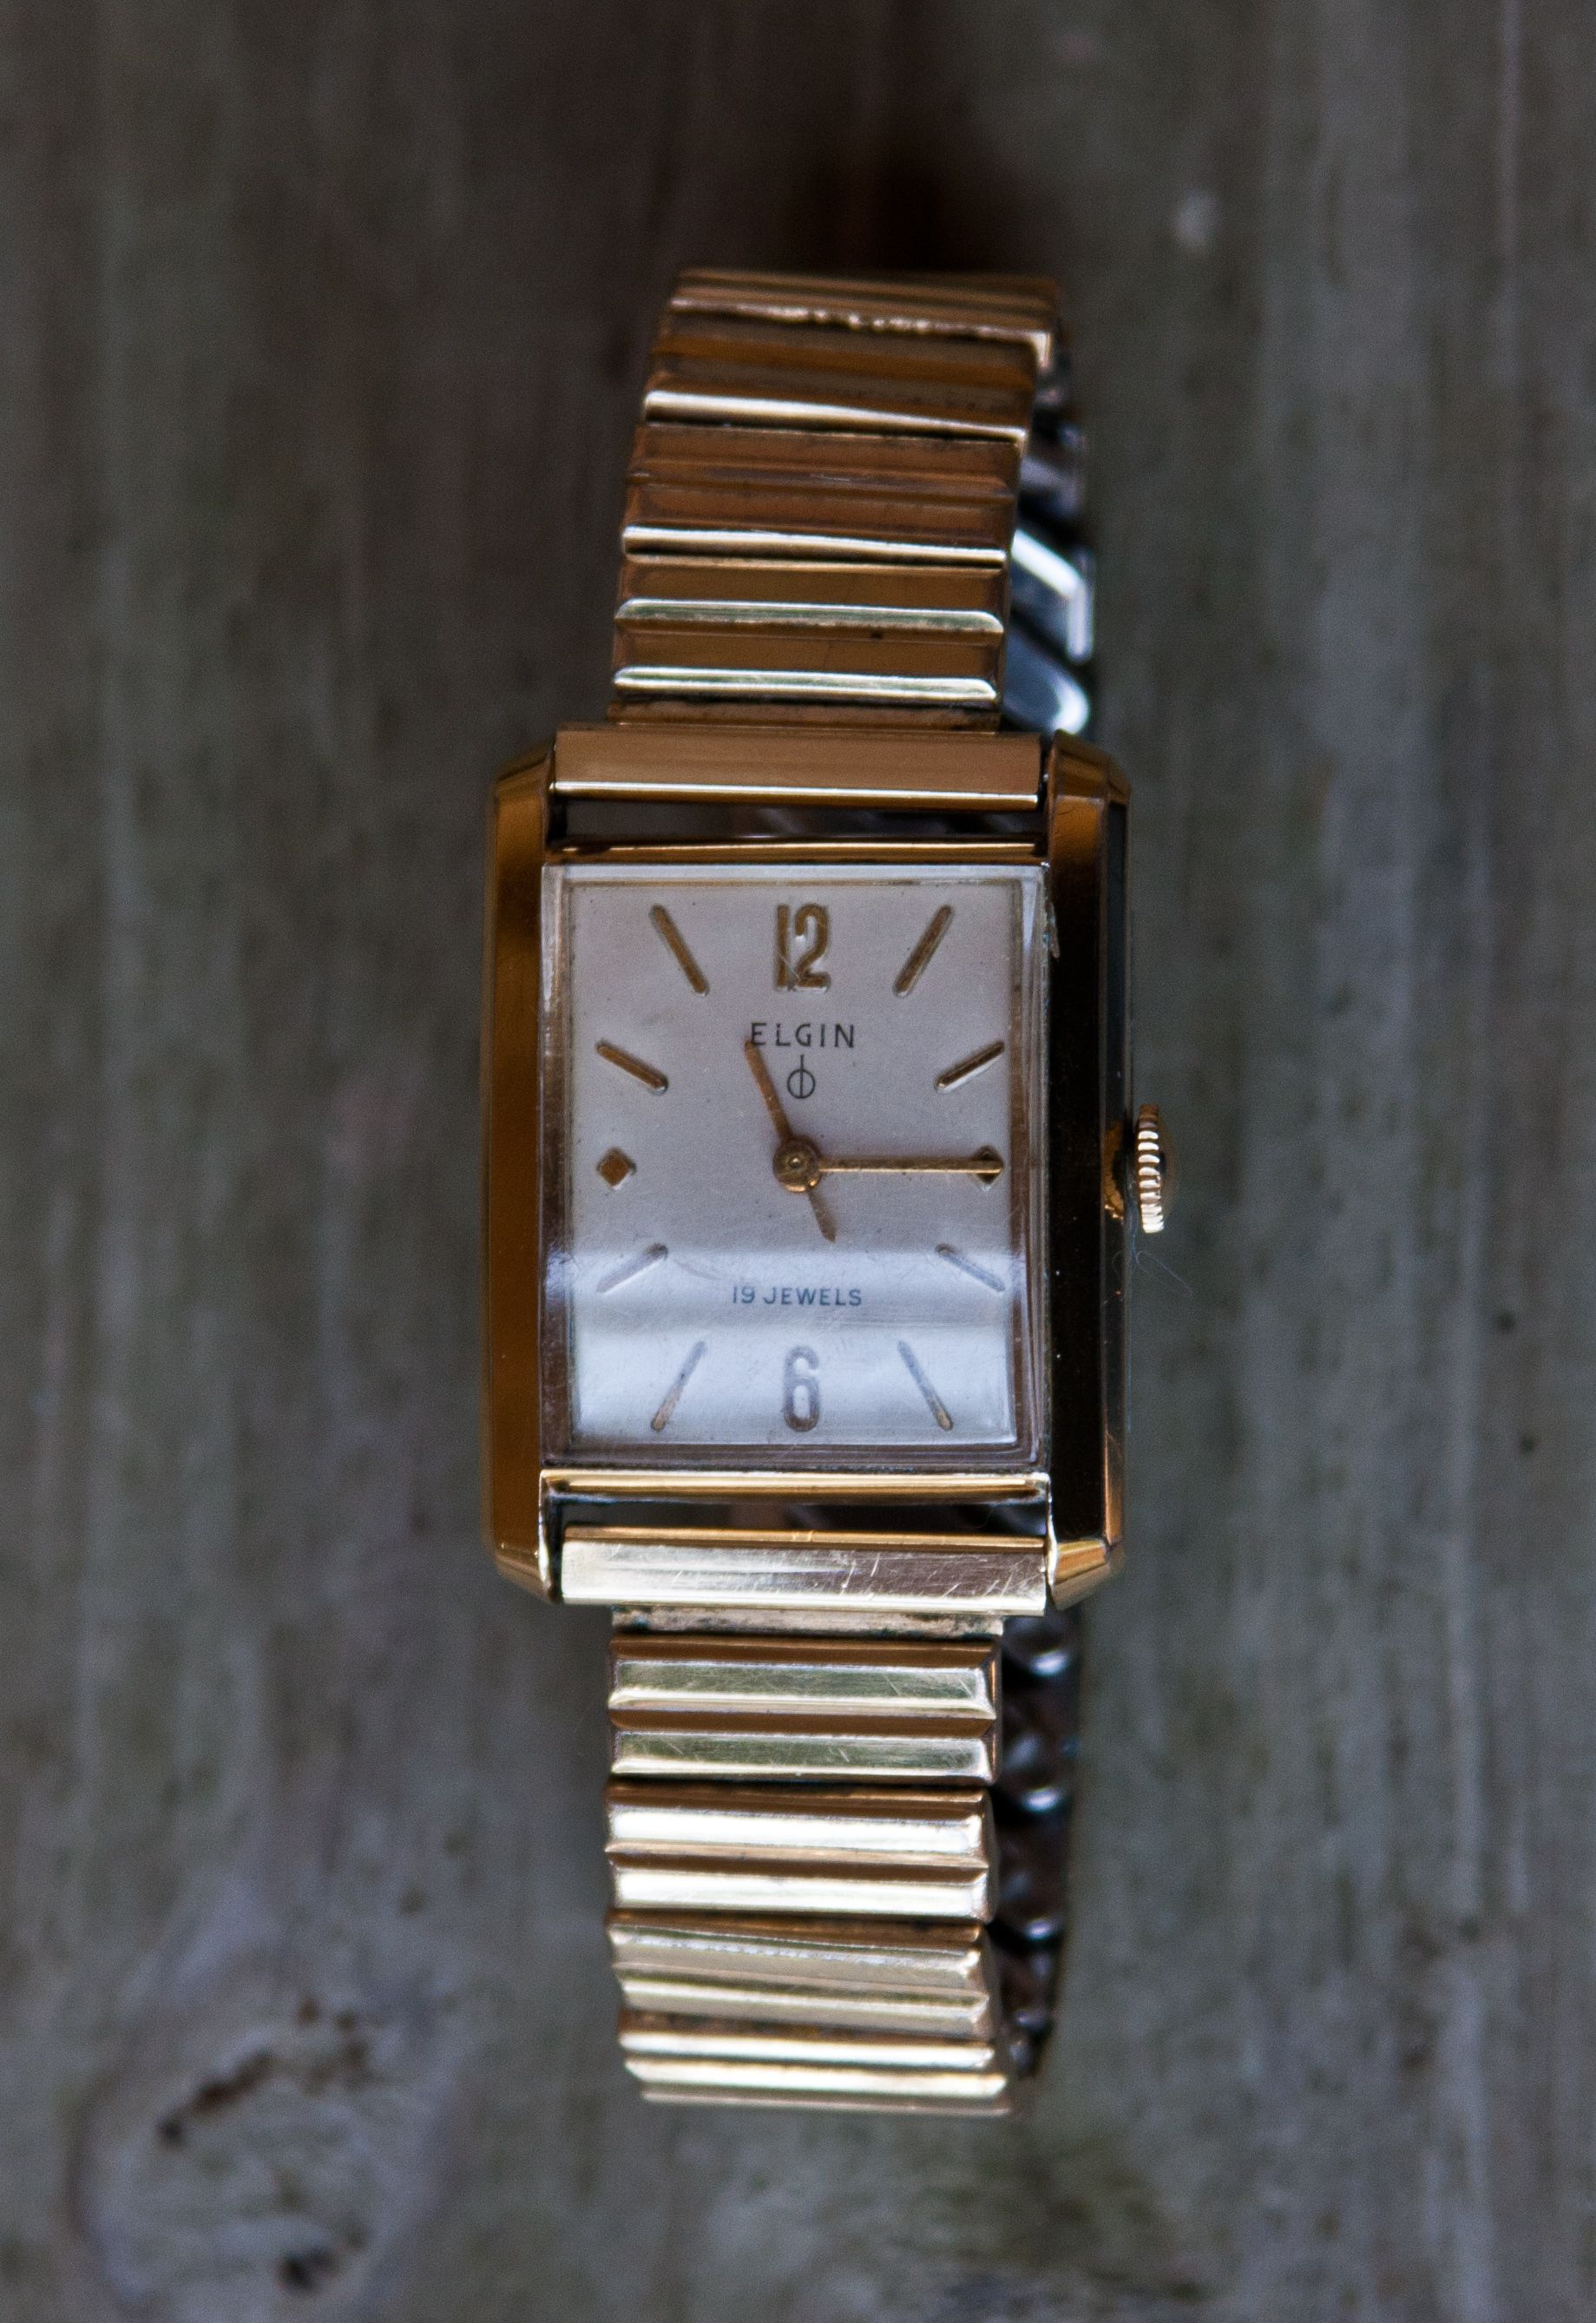 1959 Elgin Tank. This watch includes Elgin's 19 jewel 752 movement with the  DuraBalance mechanism